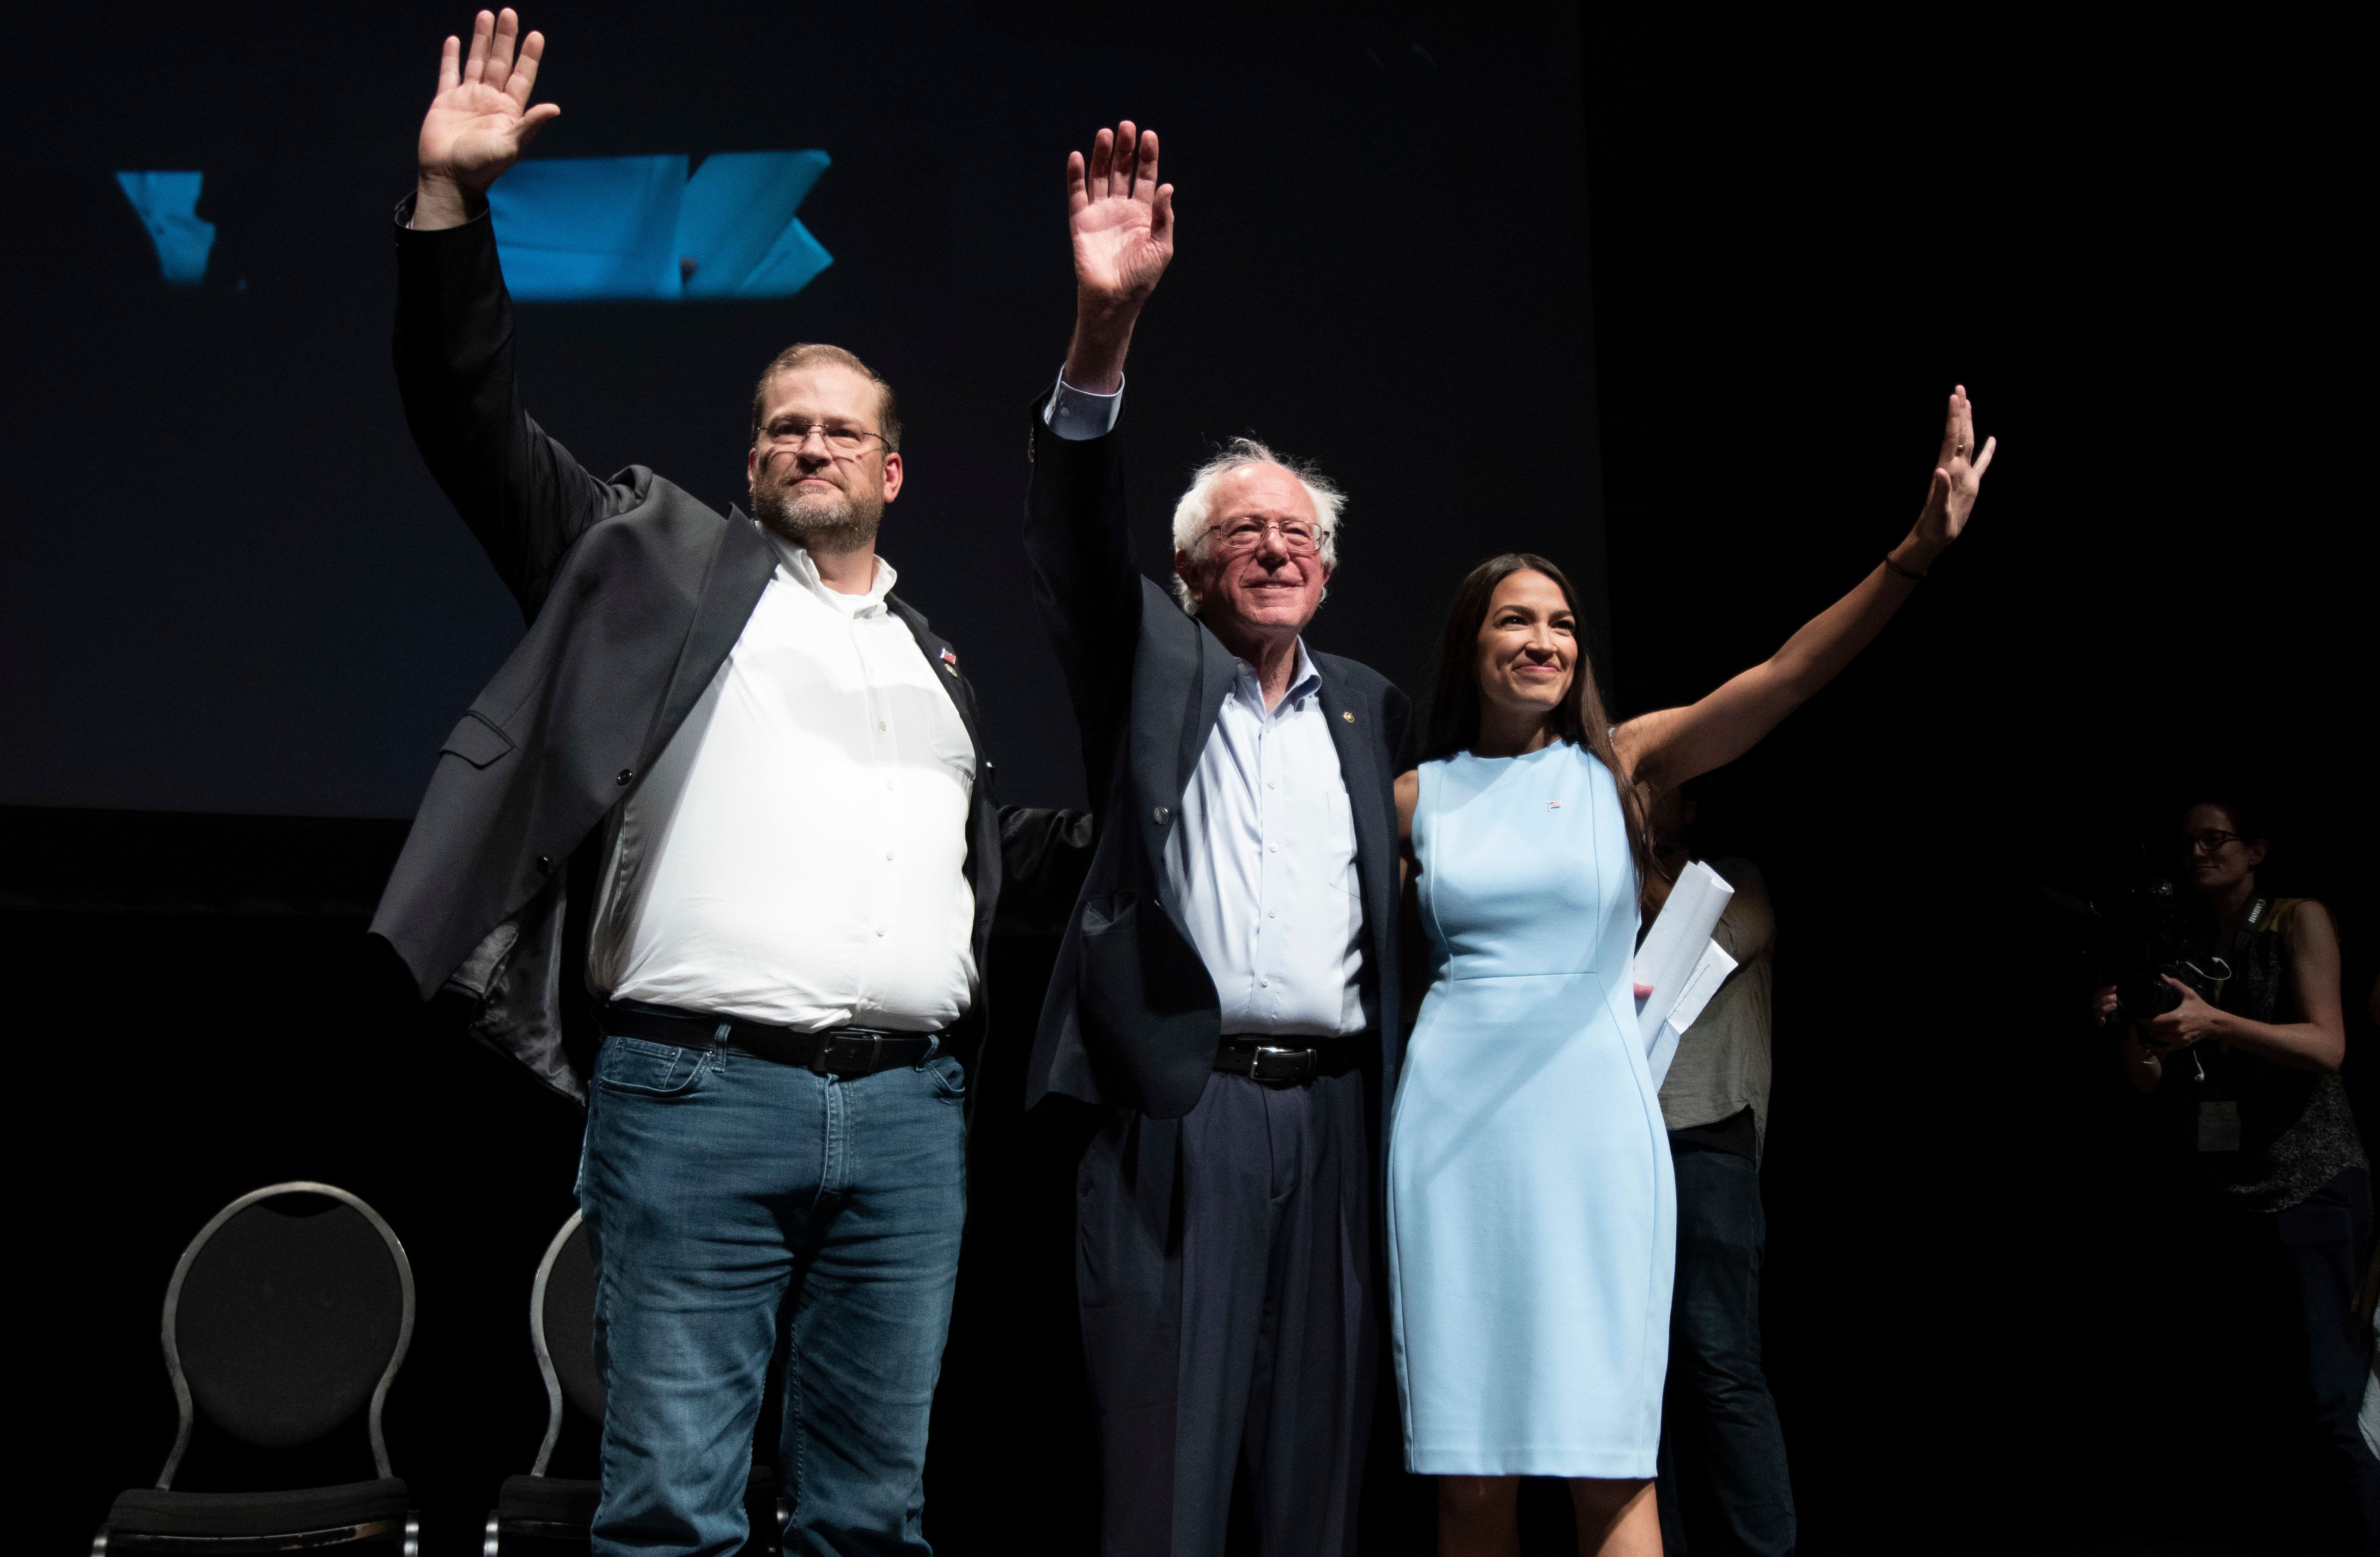 WICHITA, KA - JULY 20: James Thompson, Senator Bernie Sanders and Alexandria Ocasio-Cortez,  wave to the crowd at the end of a campaign rally in Wichita, Kansas on July 20, 2018.  (Photo by J Pat Carter for the Washington Post)